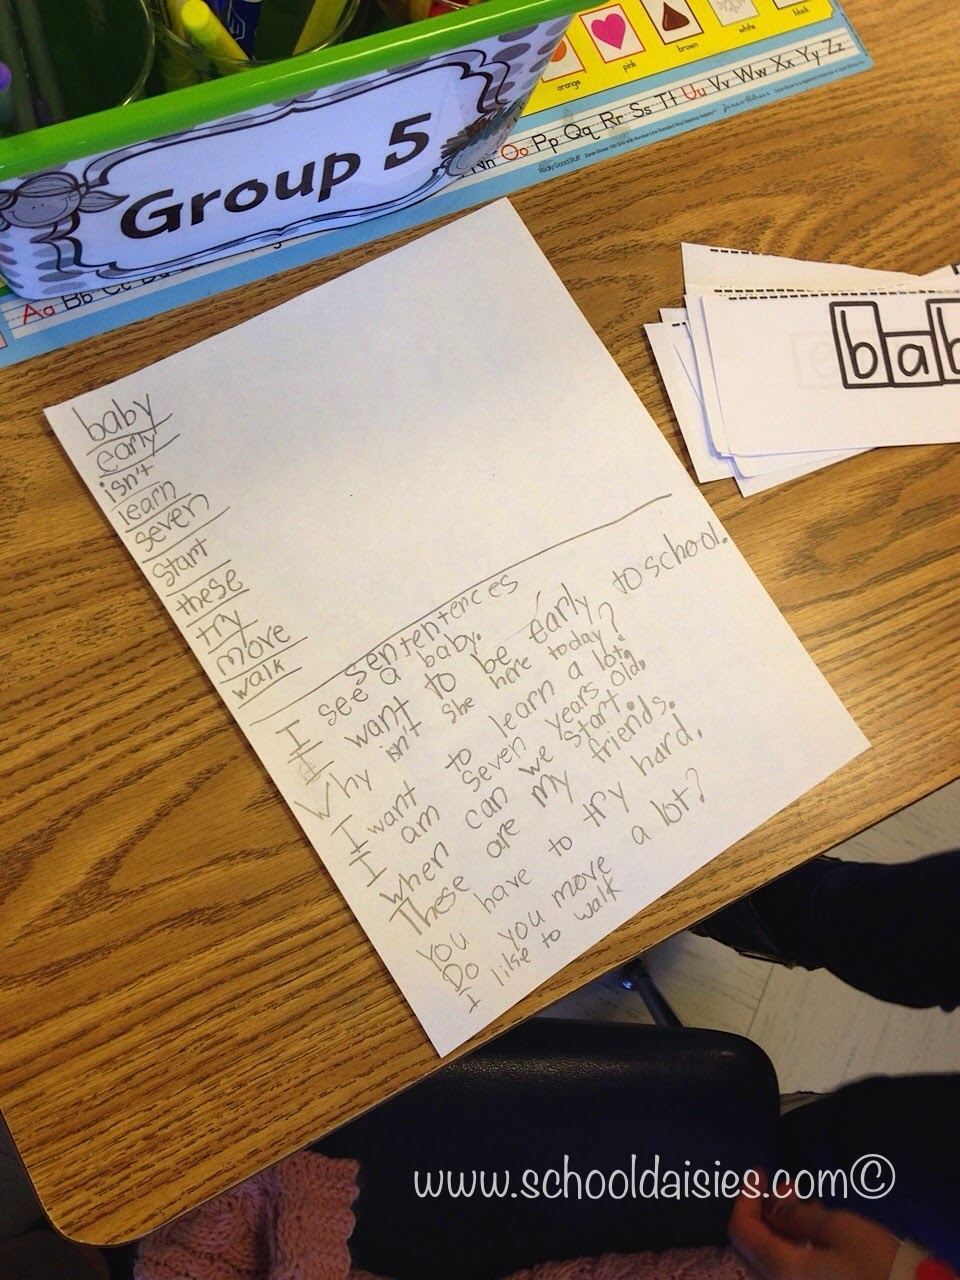 Worksheet Second Grade Reading Material school daisies spend a day in second grade ive also developed these high frequency word practice materials which follow the mcgraw hill wonders reading program for grade